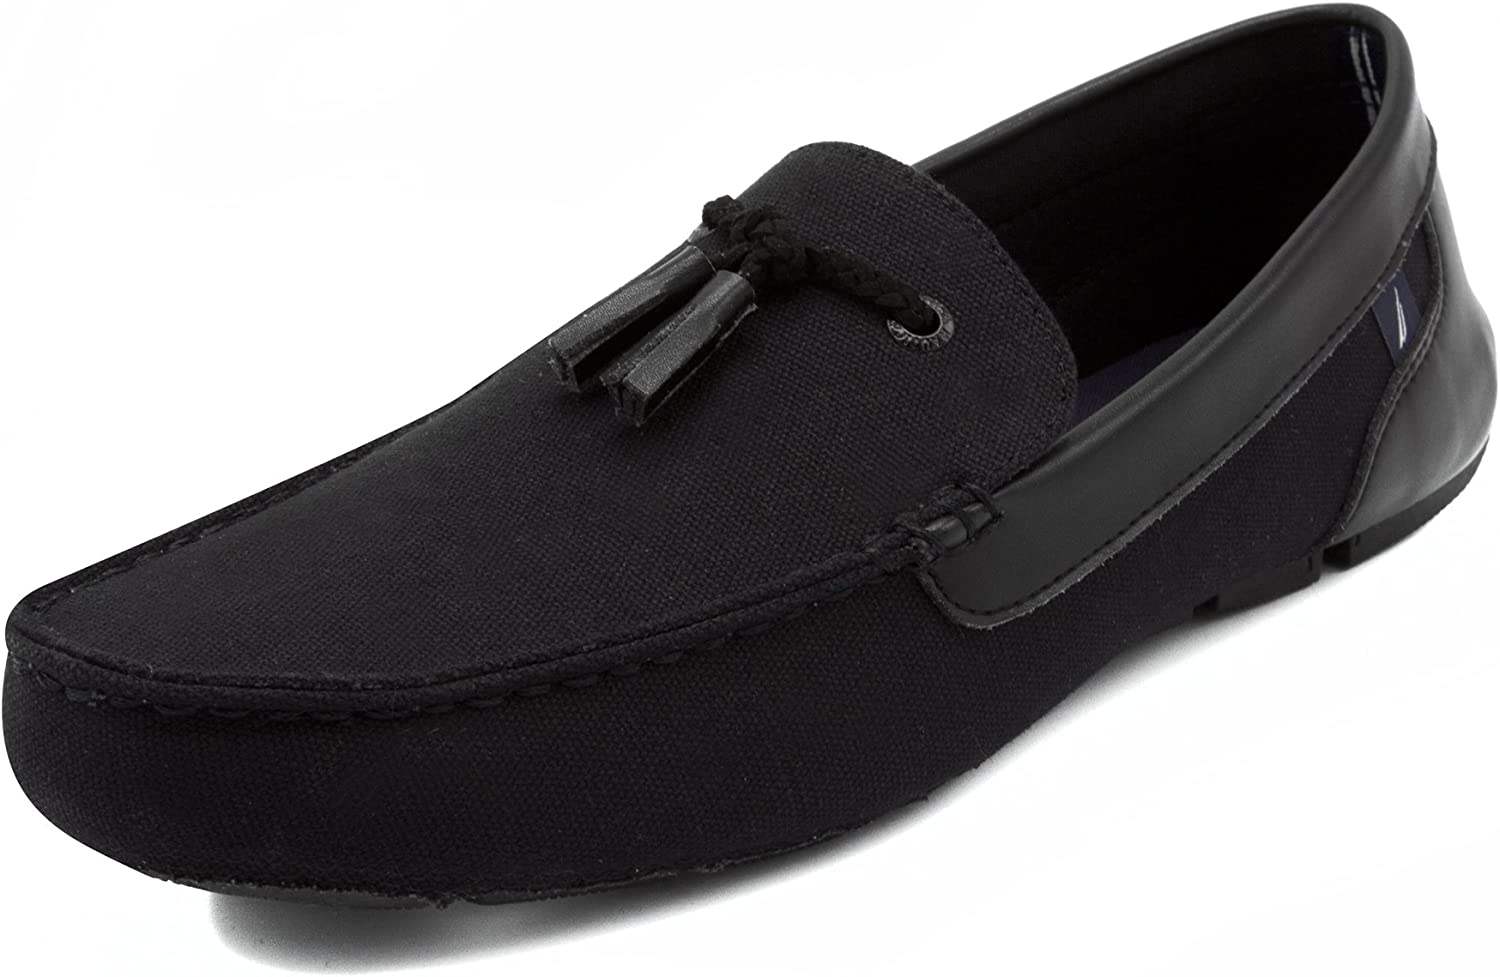 Nautica Weldin Men's Casual Tassel Slip-On Driving Penny Loafers Boat shoes Driver Moccasins-Black-9